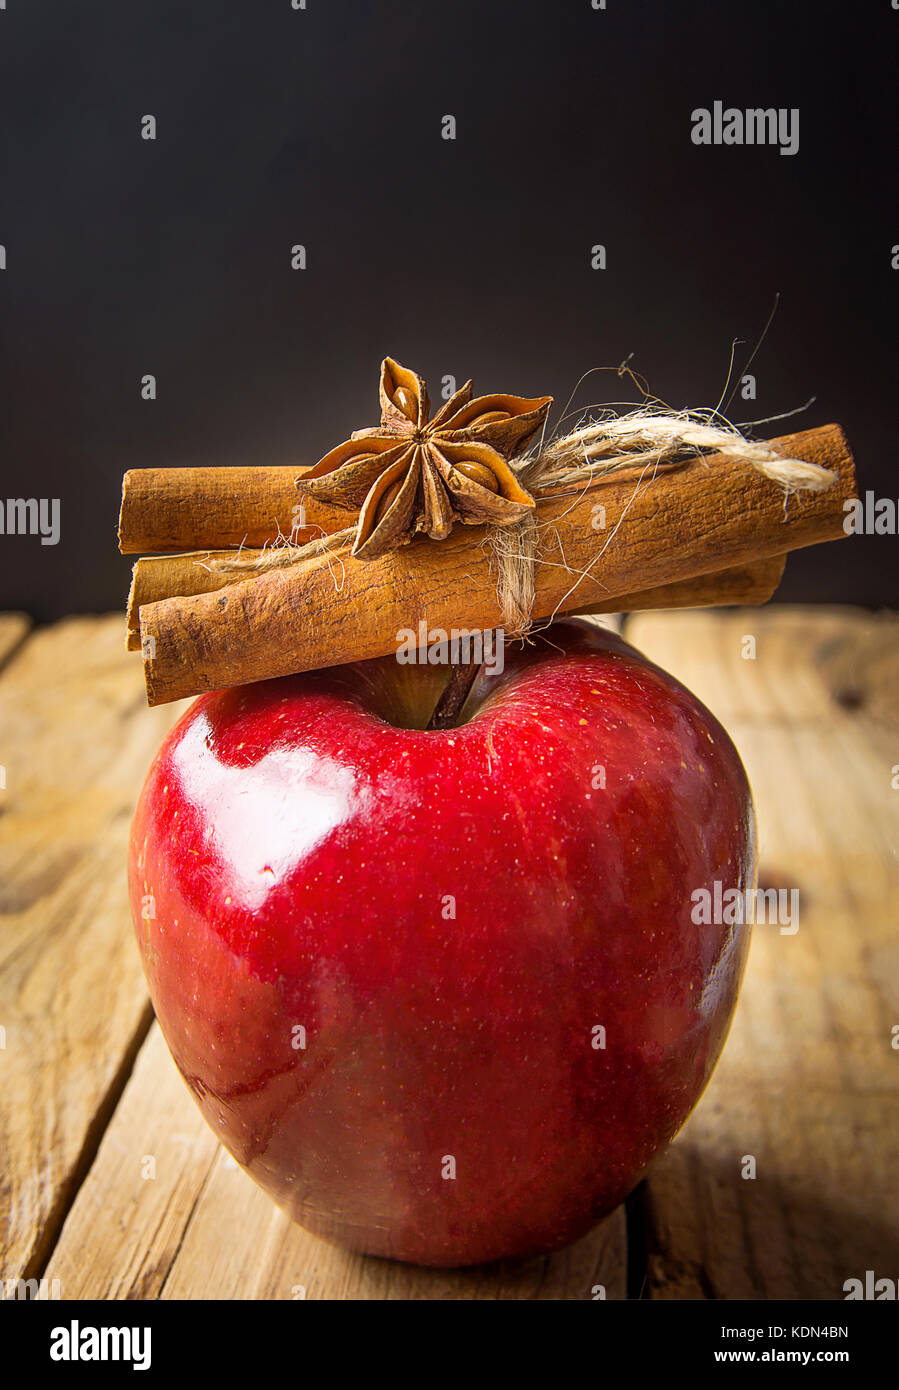 Red Glossy Apple Cinnamon Sticks Tied with Twine Anise Star on Wood Background. Vintage Rustic Style. Christmas - Stock Image